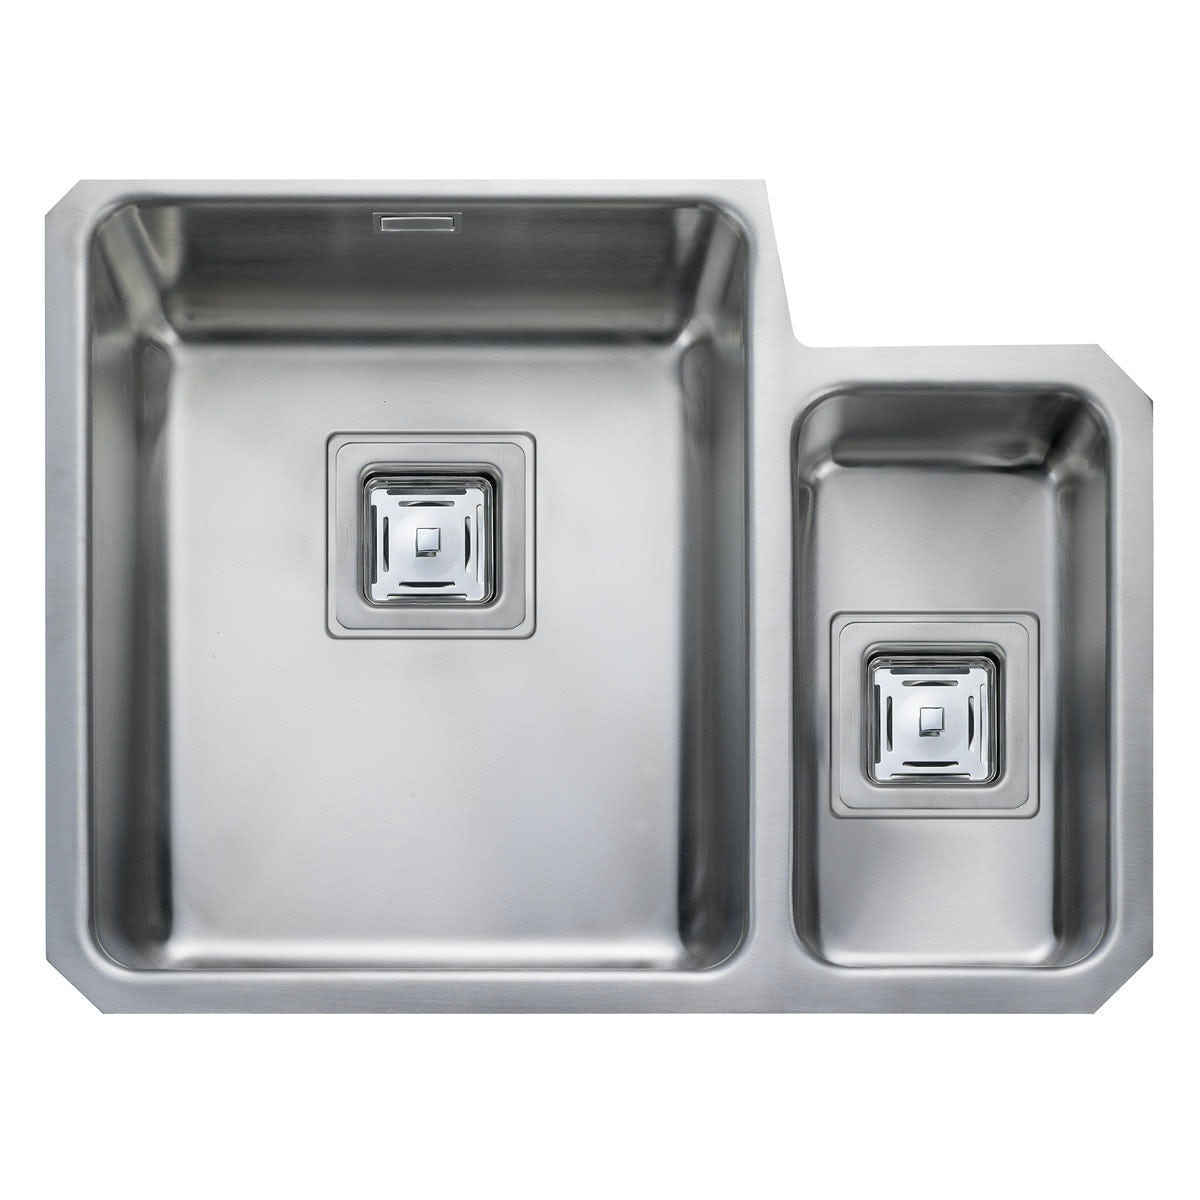 Rangemaster Atlantic Quad 1.5 bowl undermount right handed kitchen sink with waste